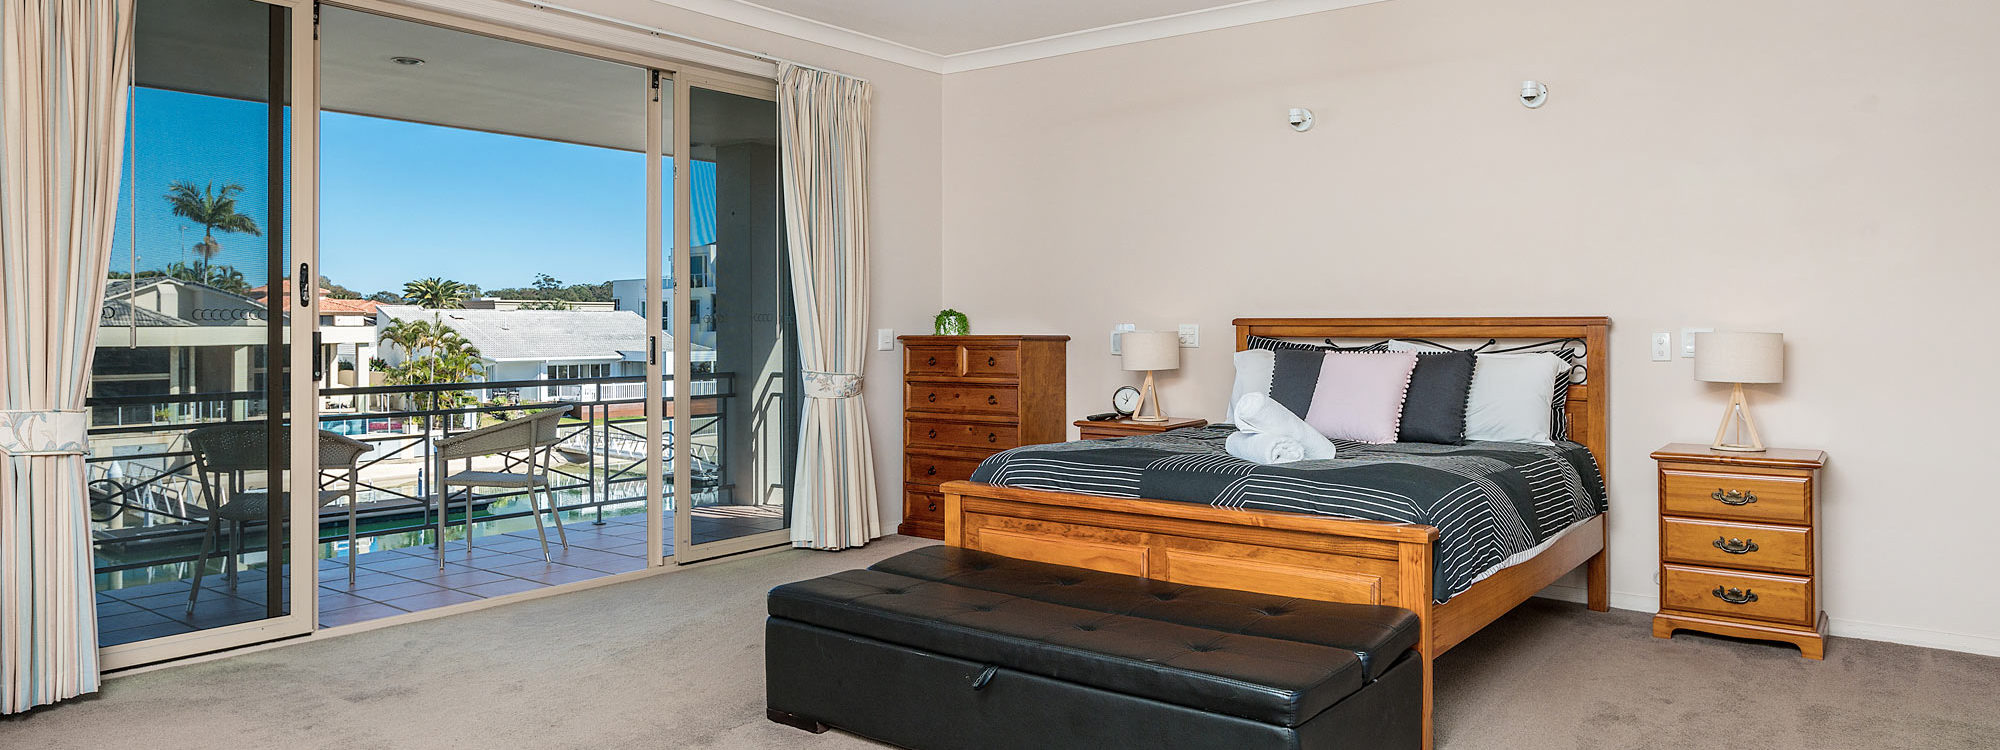 Casa Aqua - Gold Coast - Bedroom 1